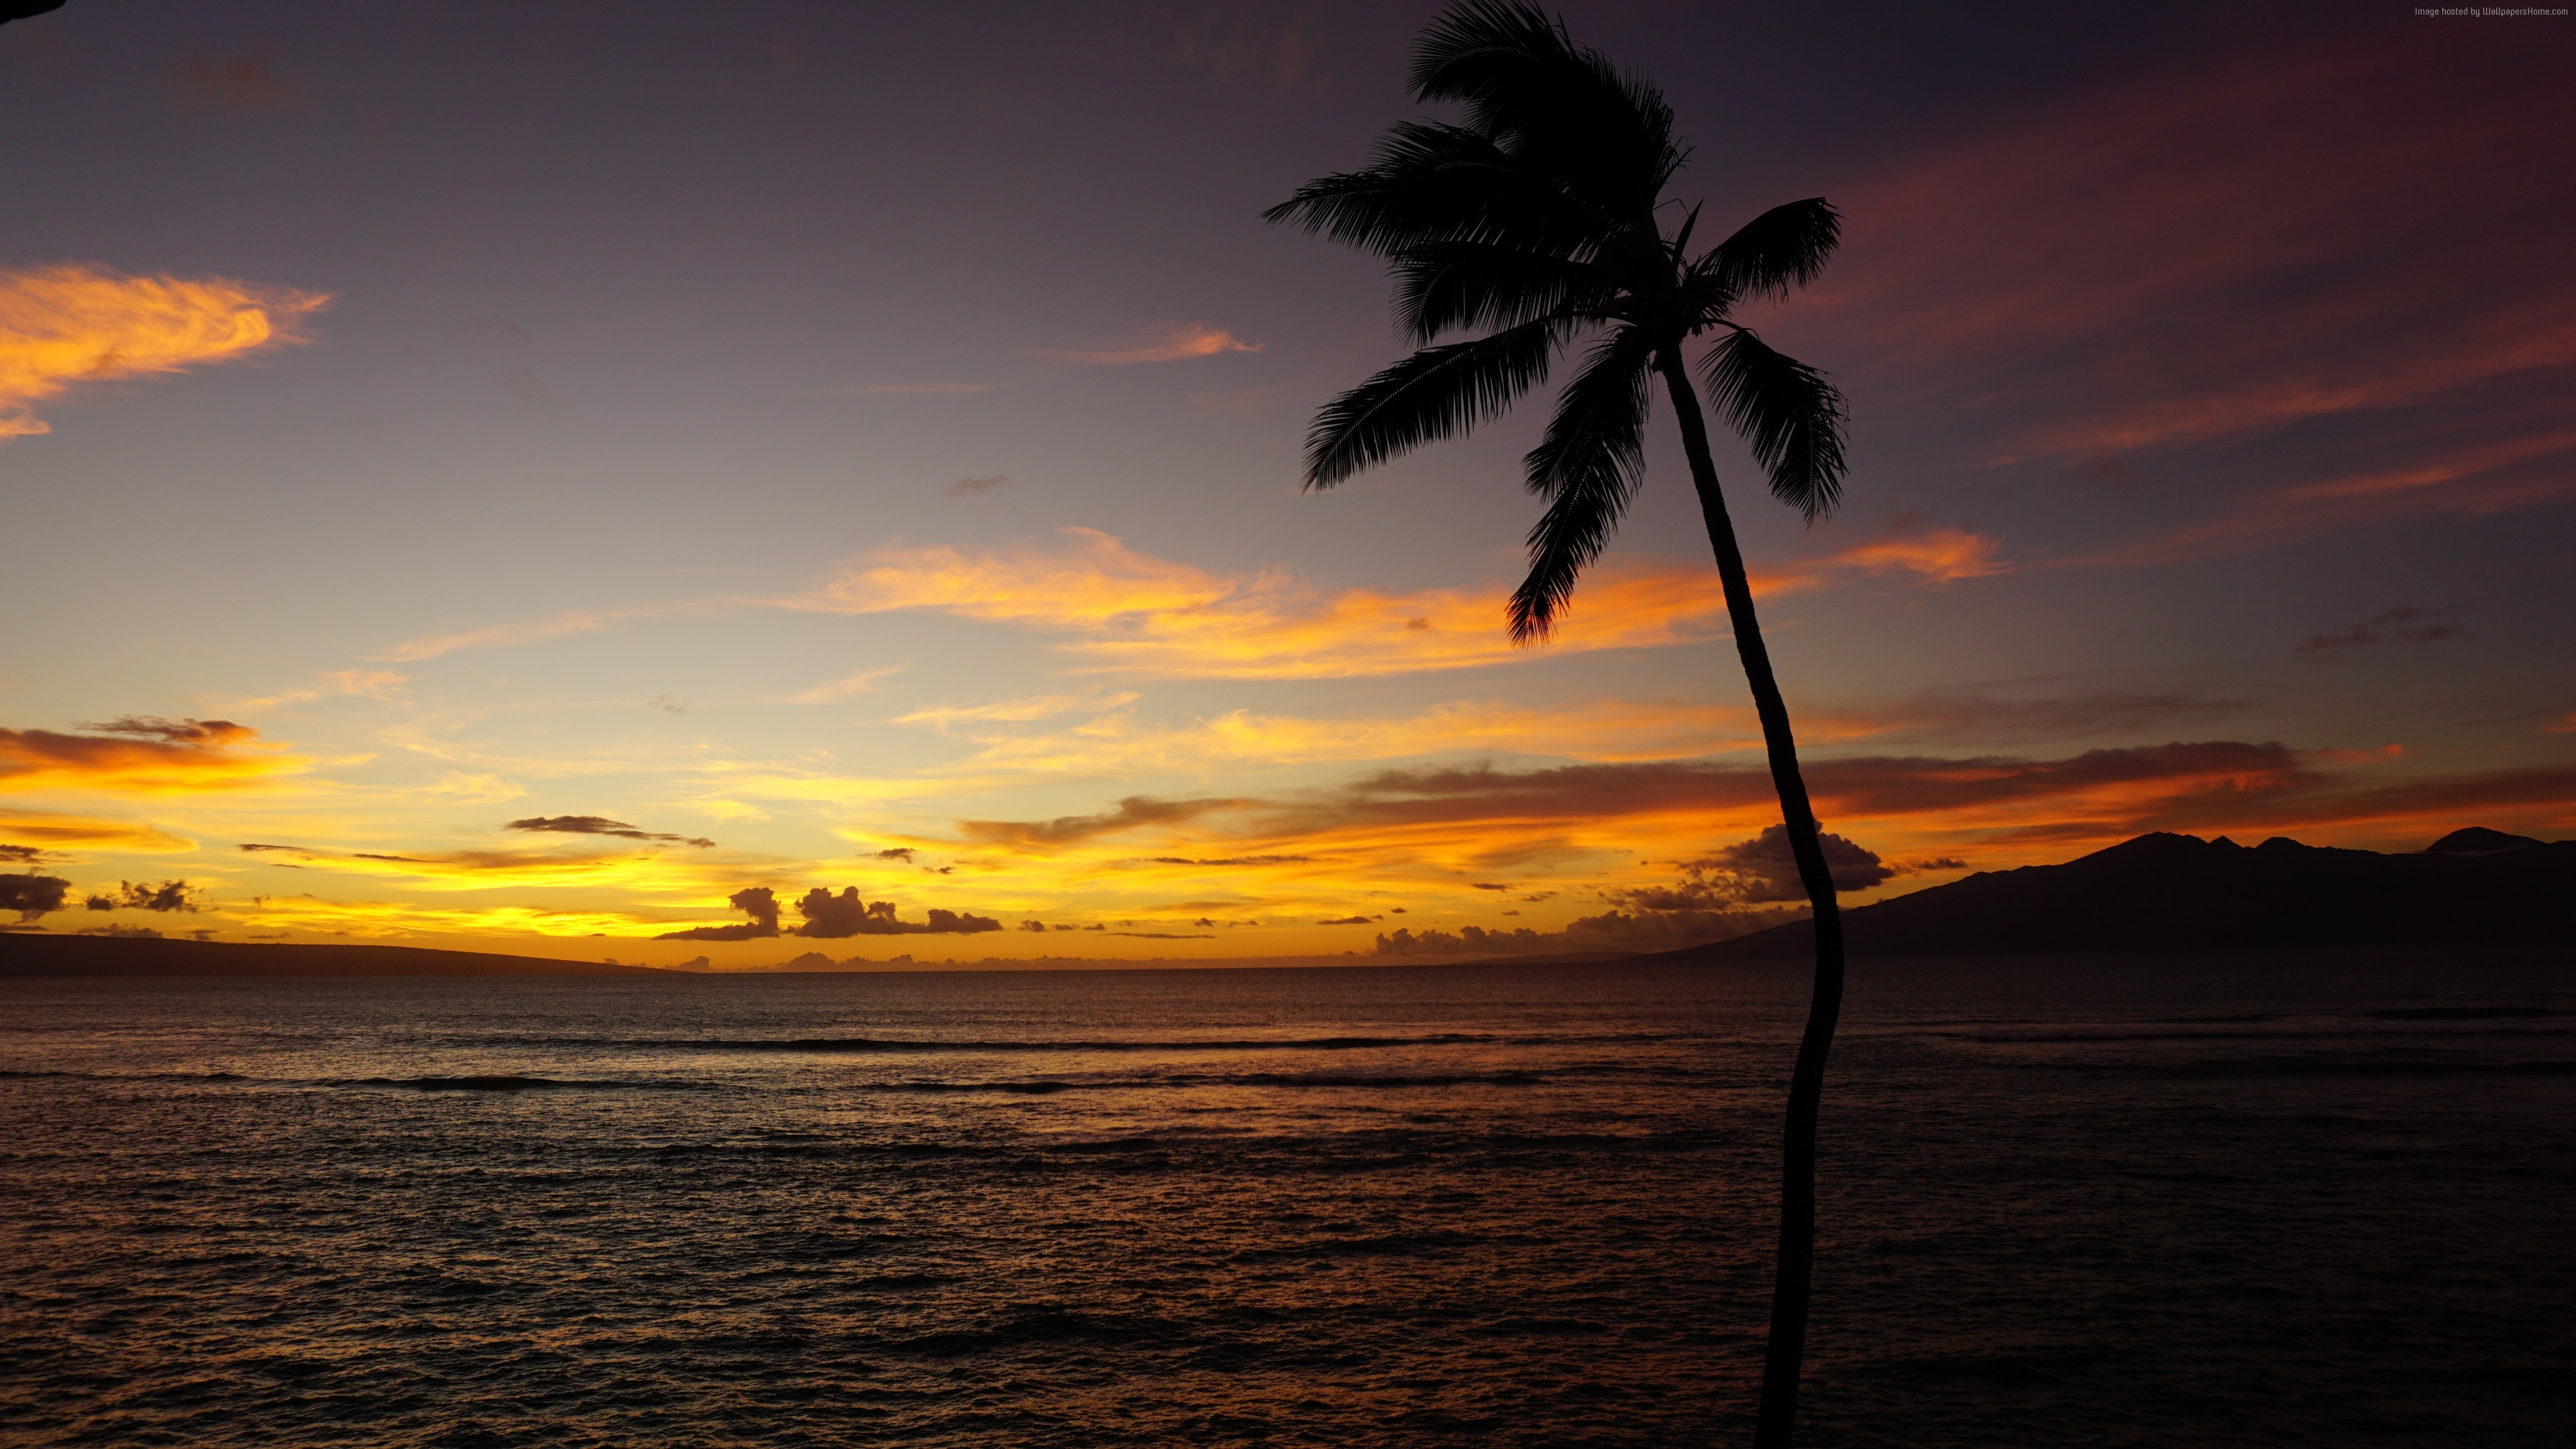 wallpaper maui, hawaii, ocean, palm, sunset, 5k, nature 5k, hawaii